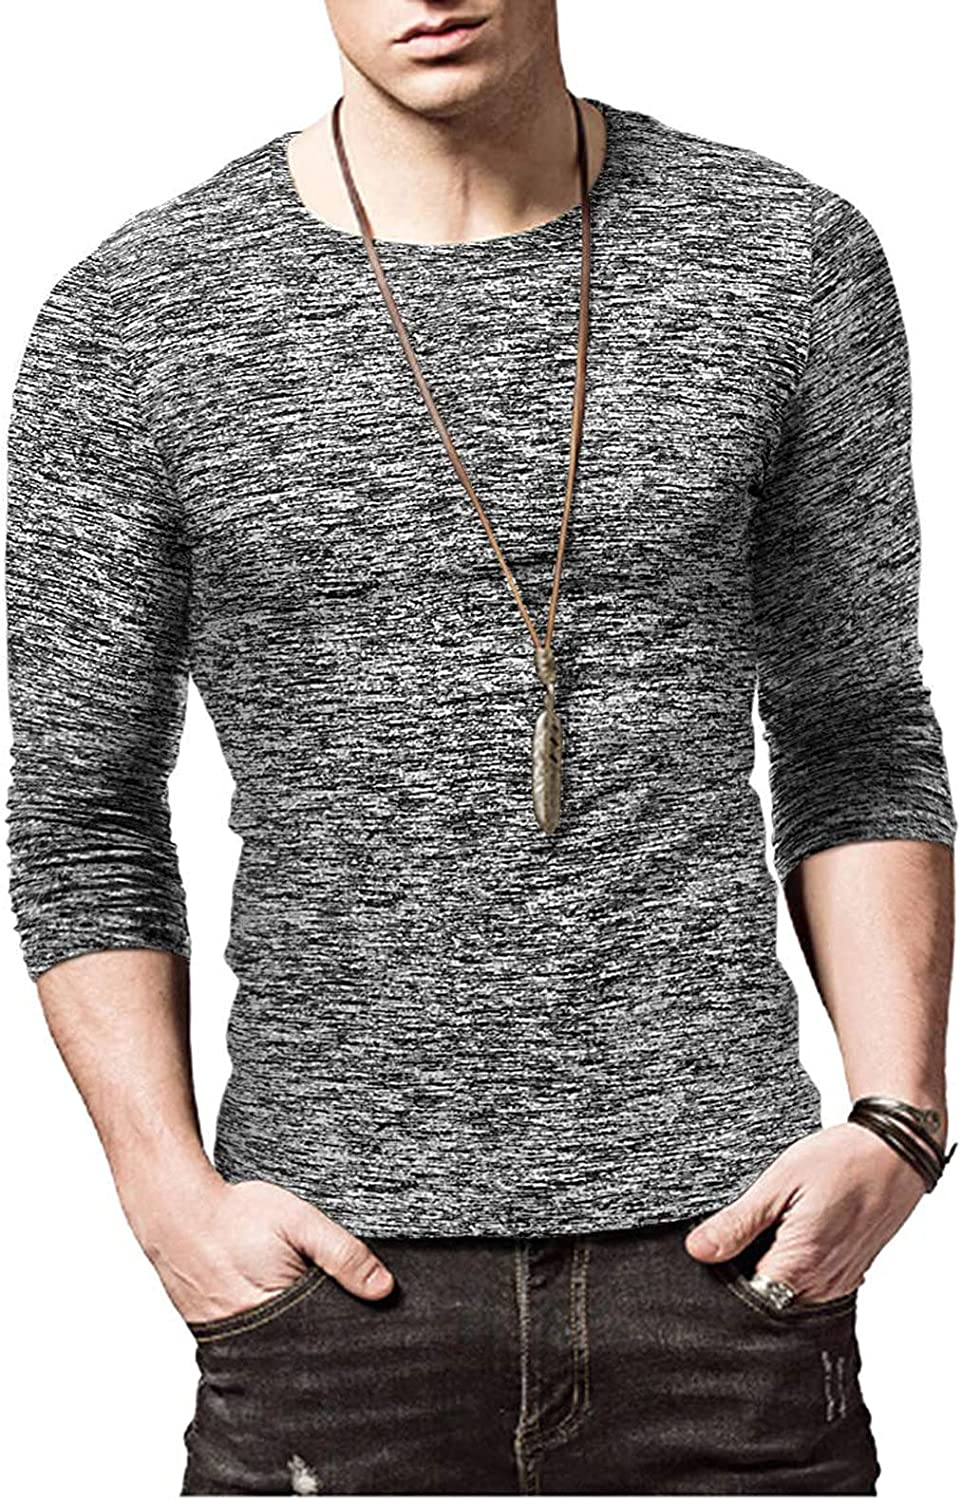 Long Sleeve Shirts for Men Casual Spring Shirt Muscle Round Neck Solid Tops Blouse Cotton Fashion Slim Fits Shirts